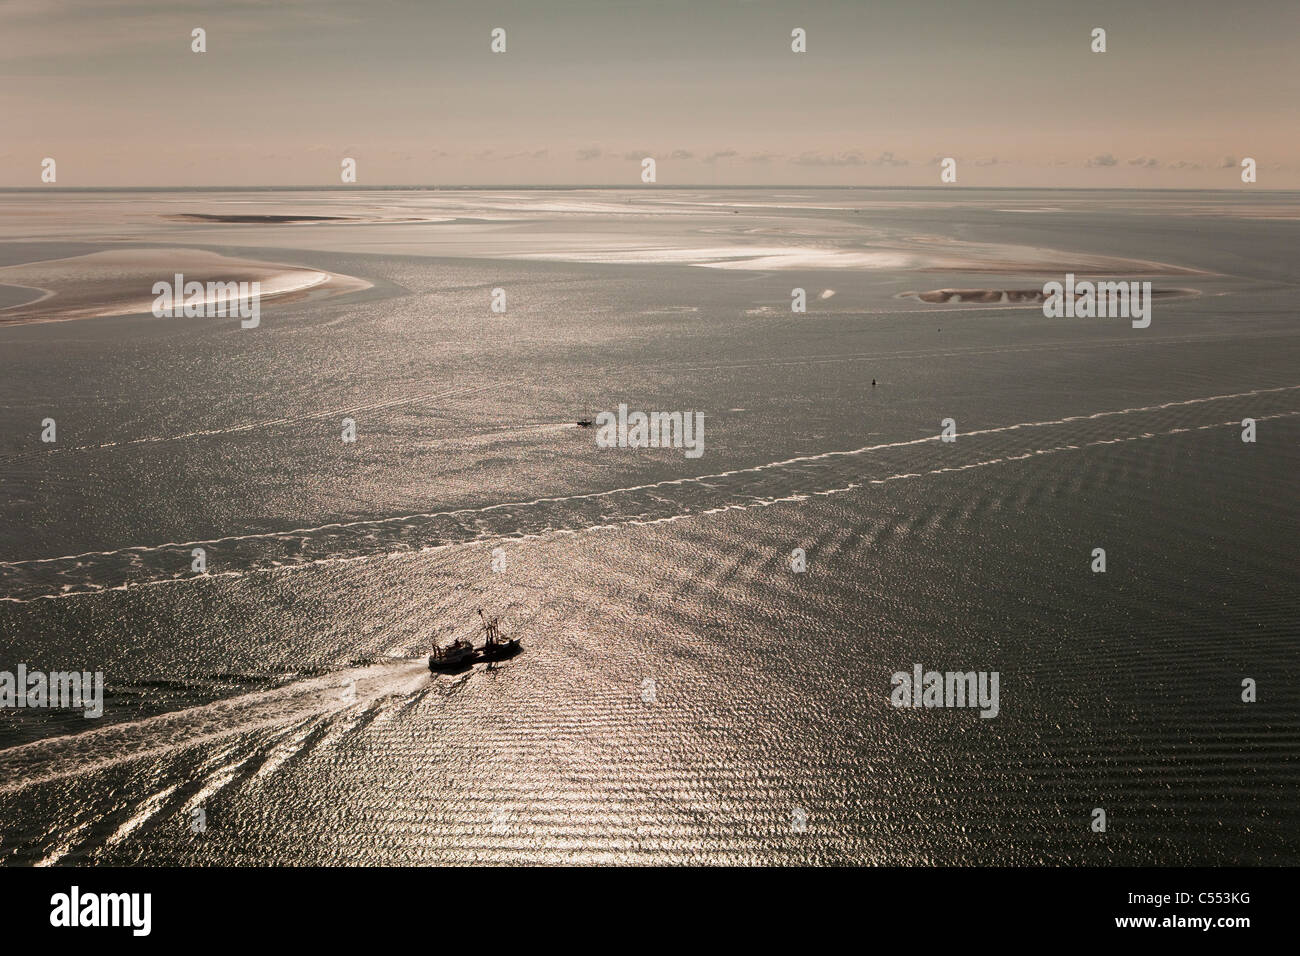 The Netherlands,Near Island Terschelling, group of islands called: Wadden in Wadden Sea. Fast ferry boat. Aerial. - Stock Image